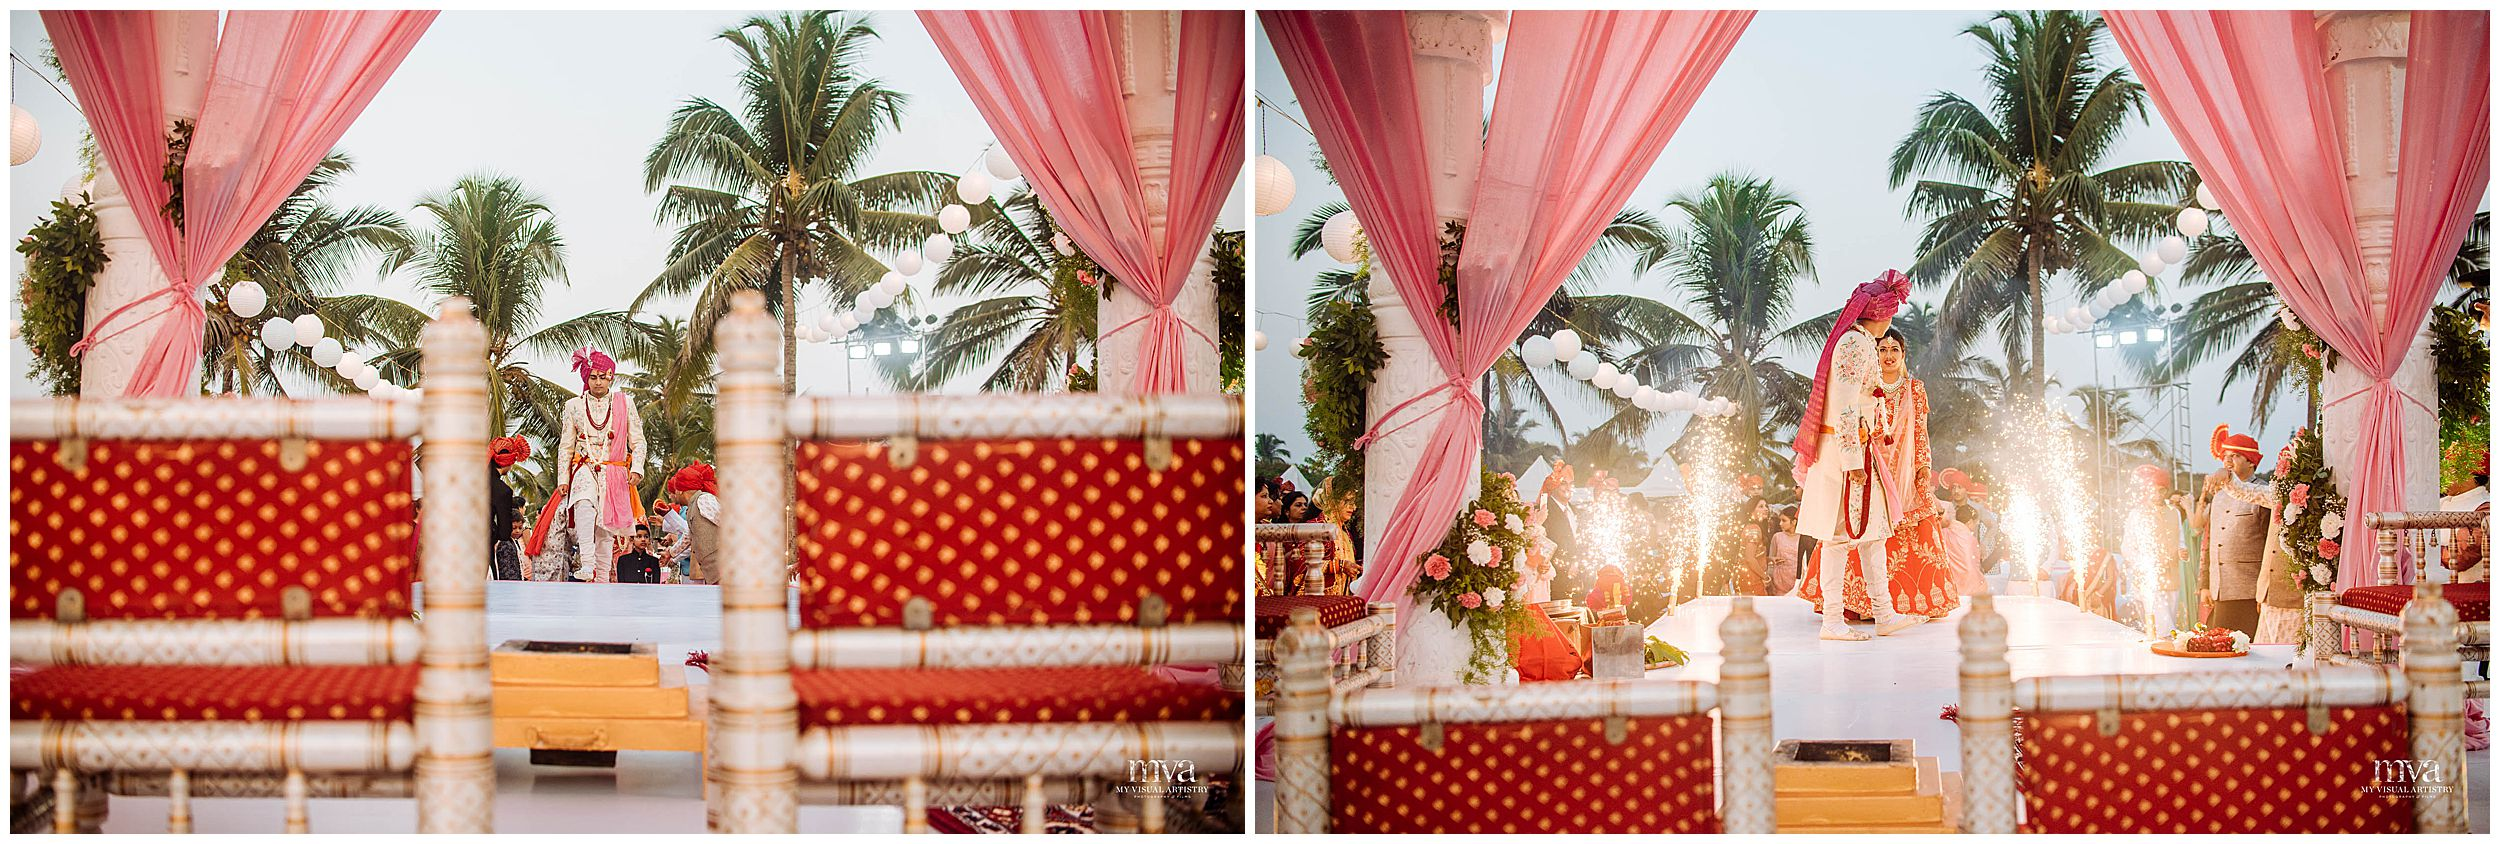 ROHIT_SANIYA_MYVISUALARTISTRY__WEDDING_PHOTOGRAPHER_GOA_DESTINATION_CAREVELA_RESORT_0019.jpg